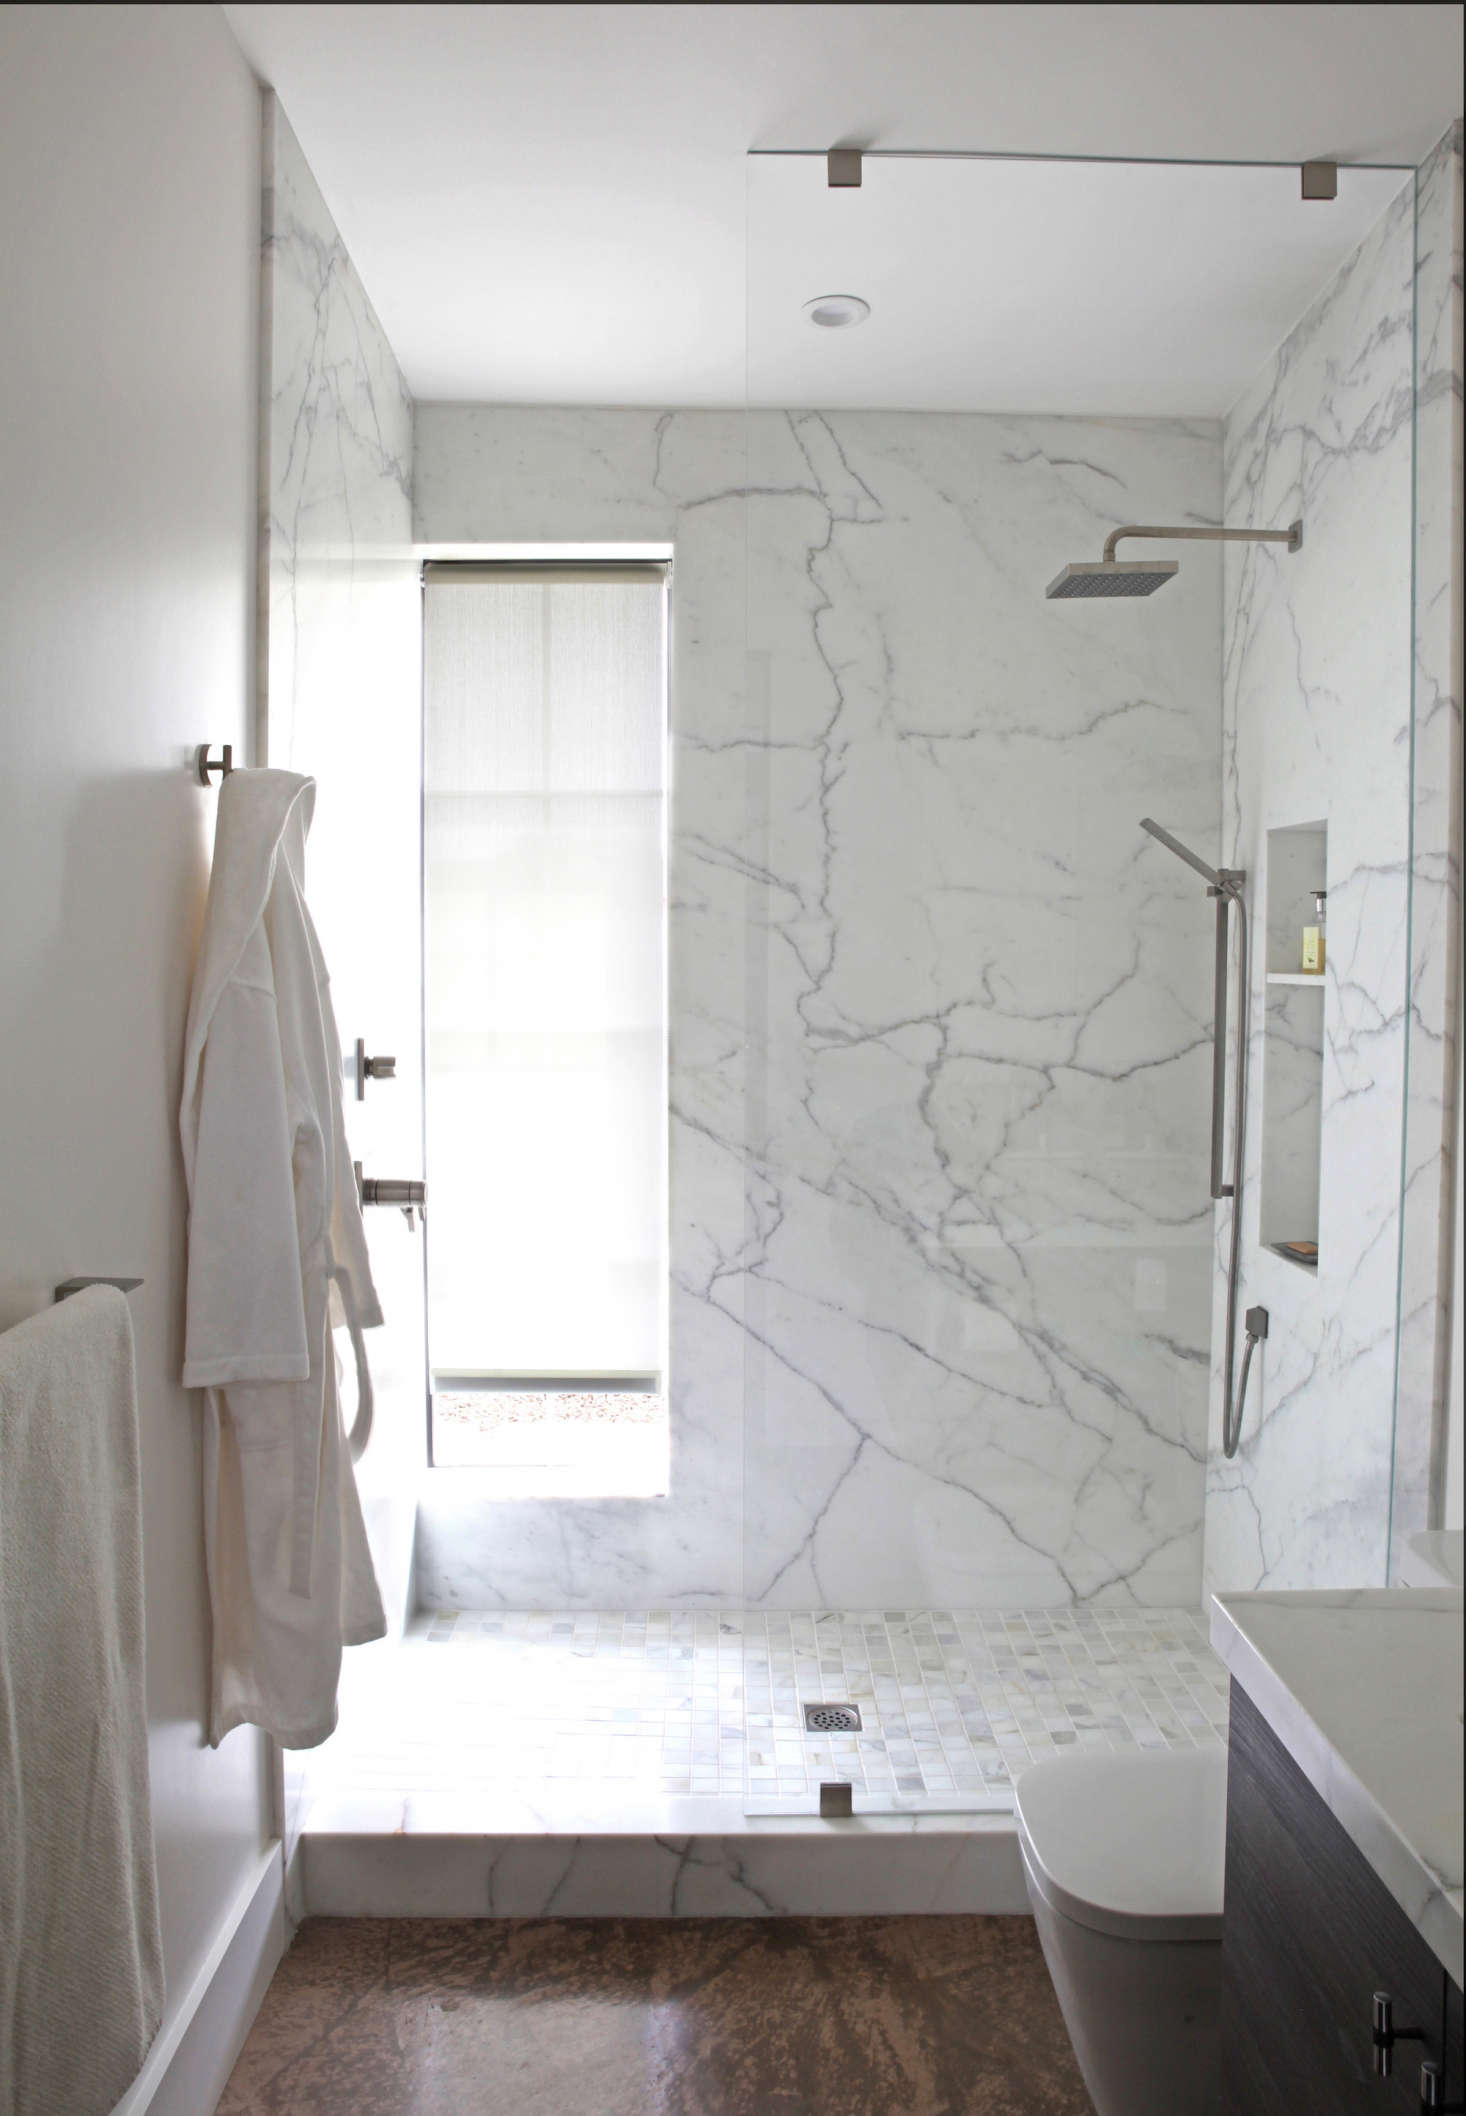 In the same Sonoma house, a narrow, water-resistant roller shade is tucked into a window recess in the marble shower. Photograph by Karen Steffens for Remodelista.